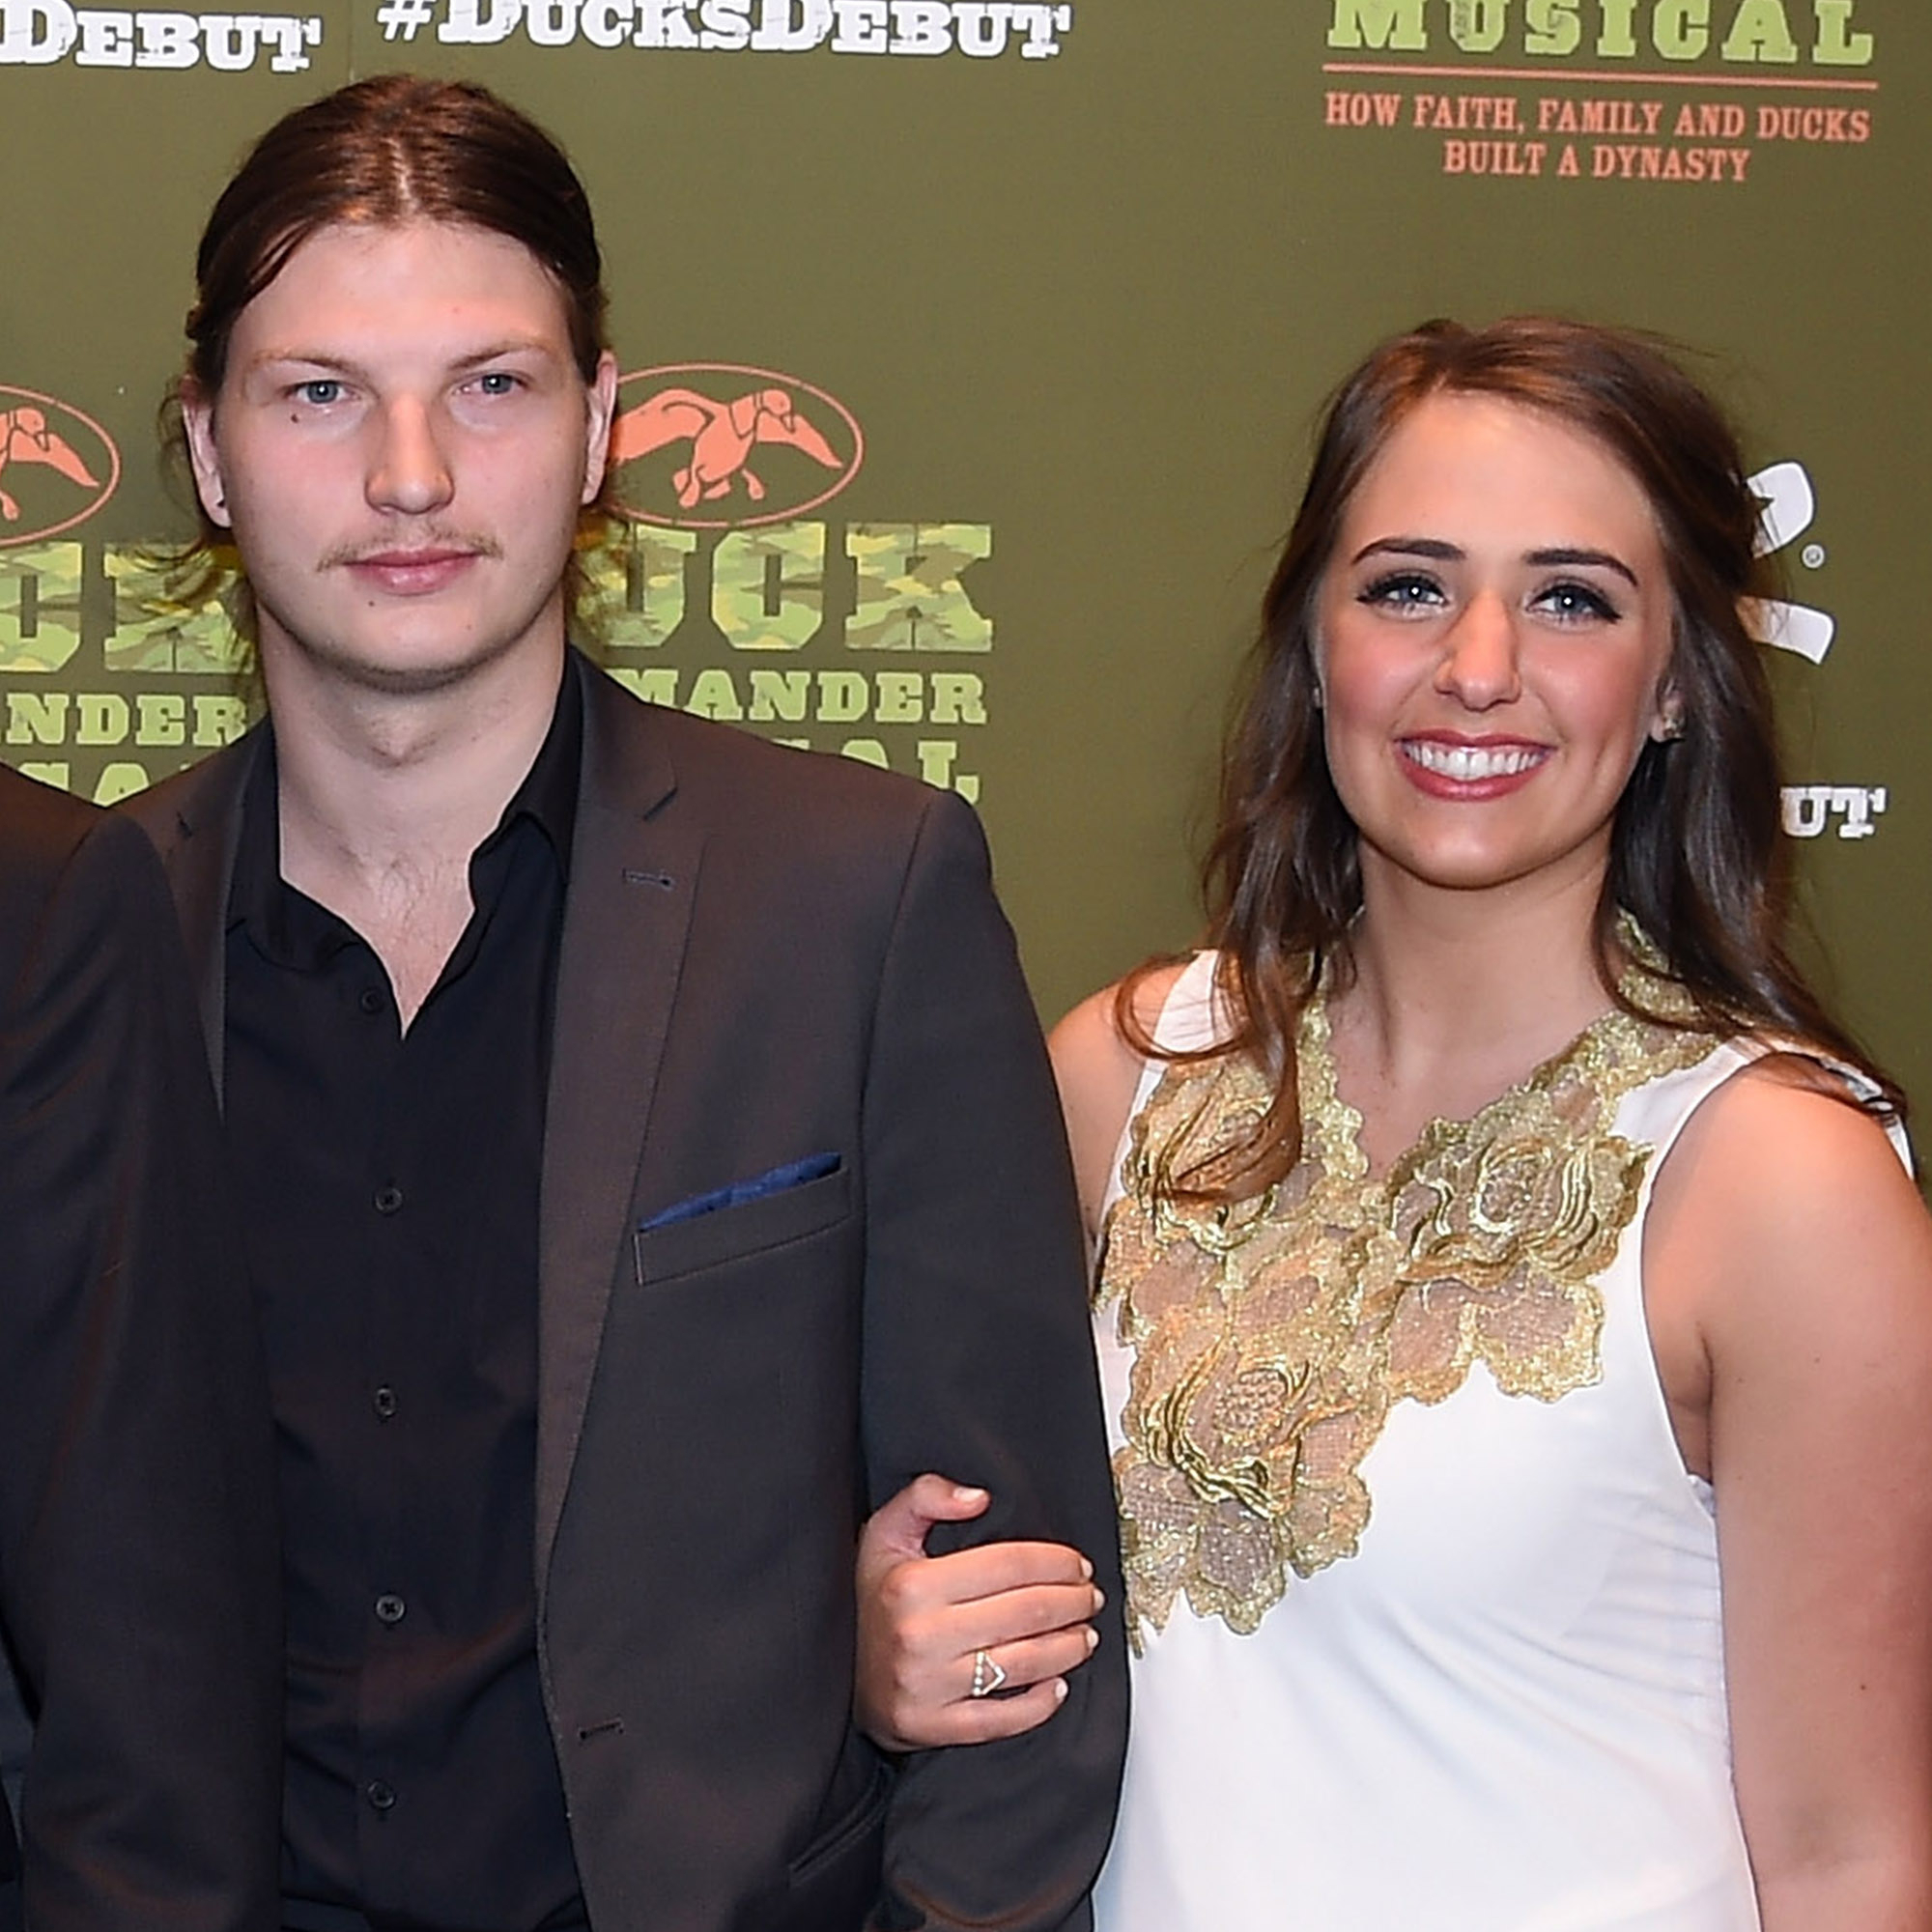 Brighton Thompson Bands: Duck Dynasty's Reed Robertson Marries High School